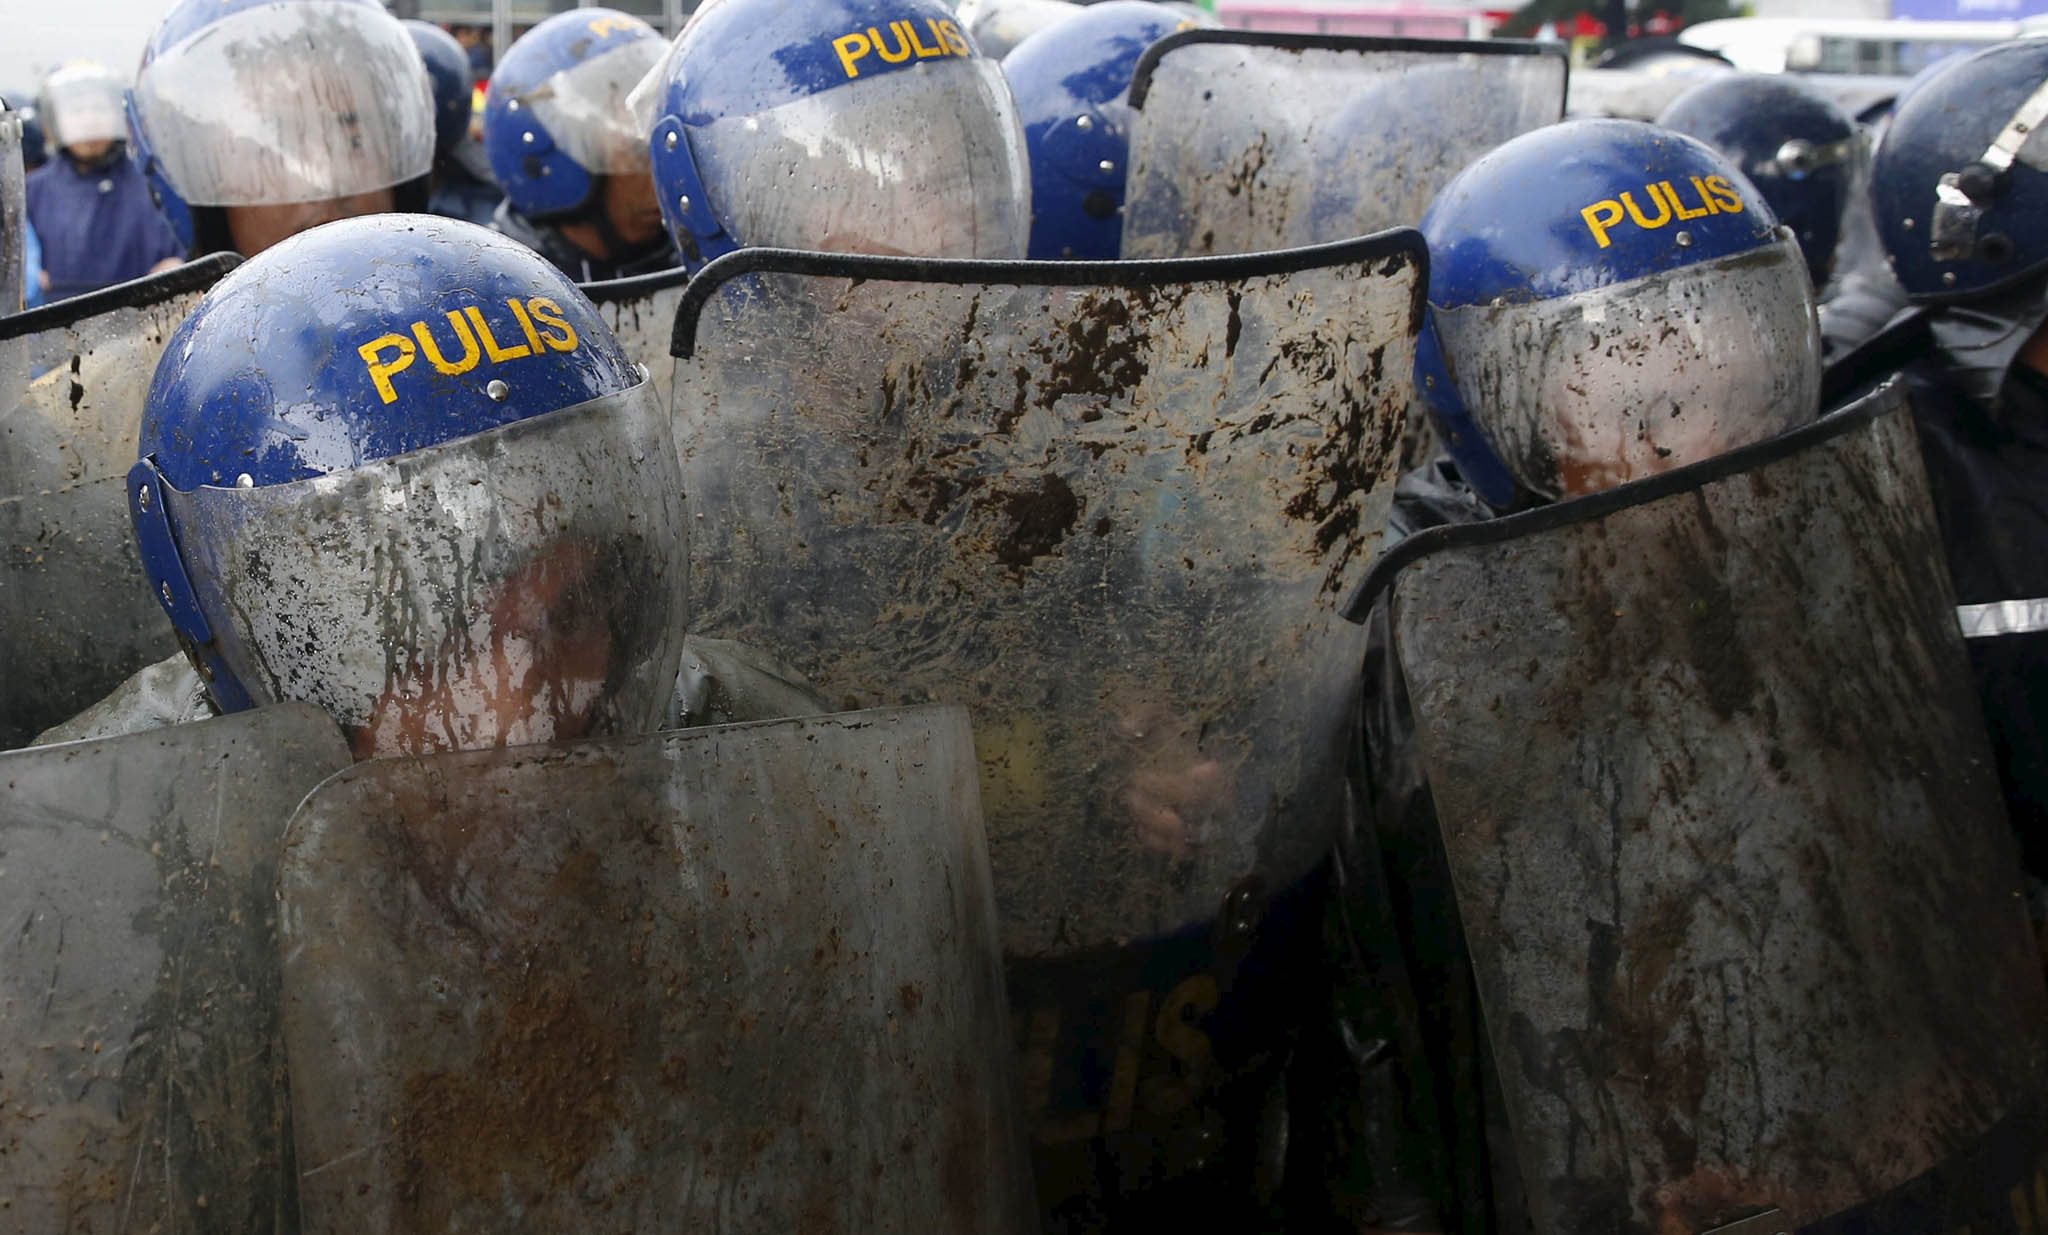 Policemen seek cover with their helmets and shields as they block protesters trying to march towards Batasang Pambansa, where Philippines President Benigno Aquino will address the joint session of Congress and deliver his last State of the Nation address in Quezon city, Metro Manila, Philippines.